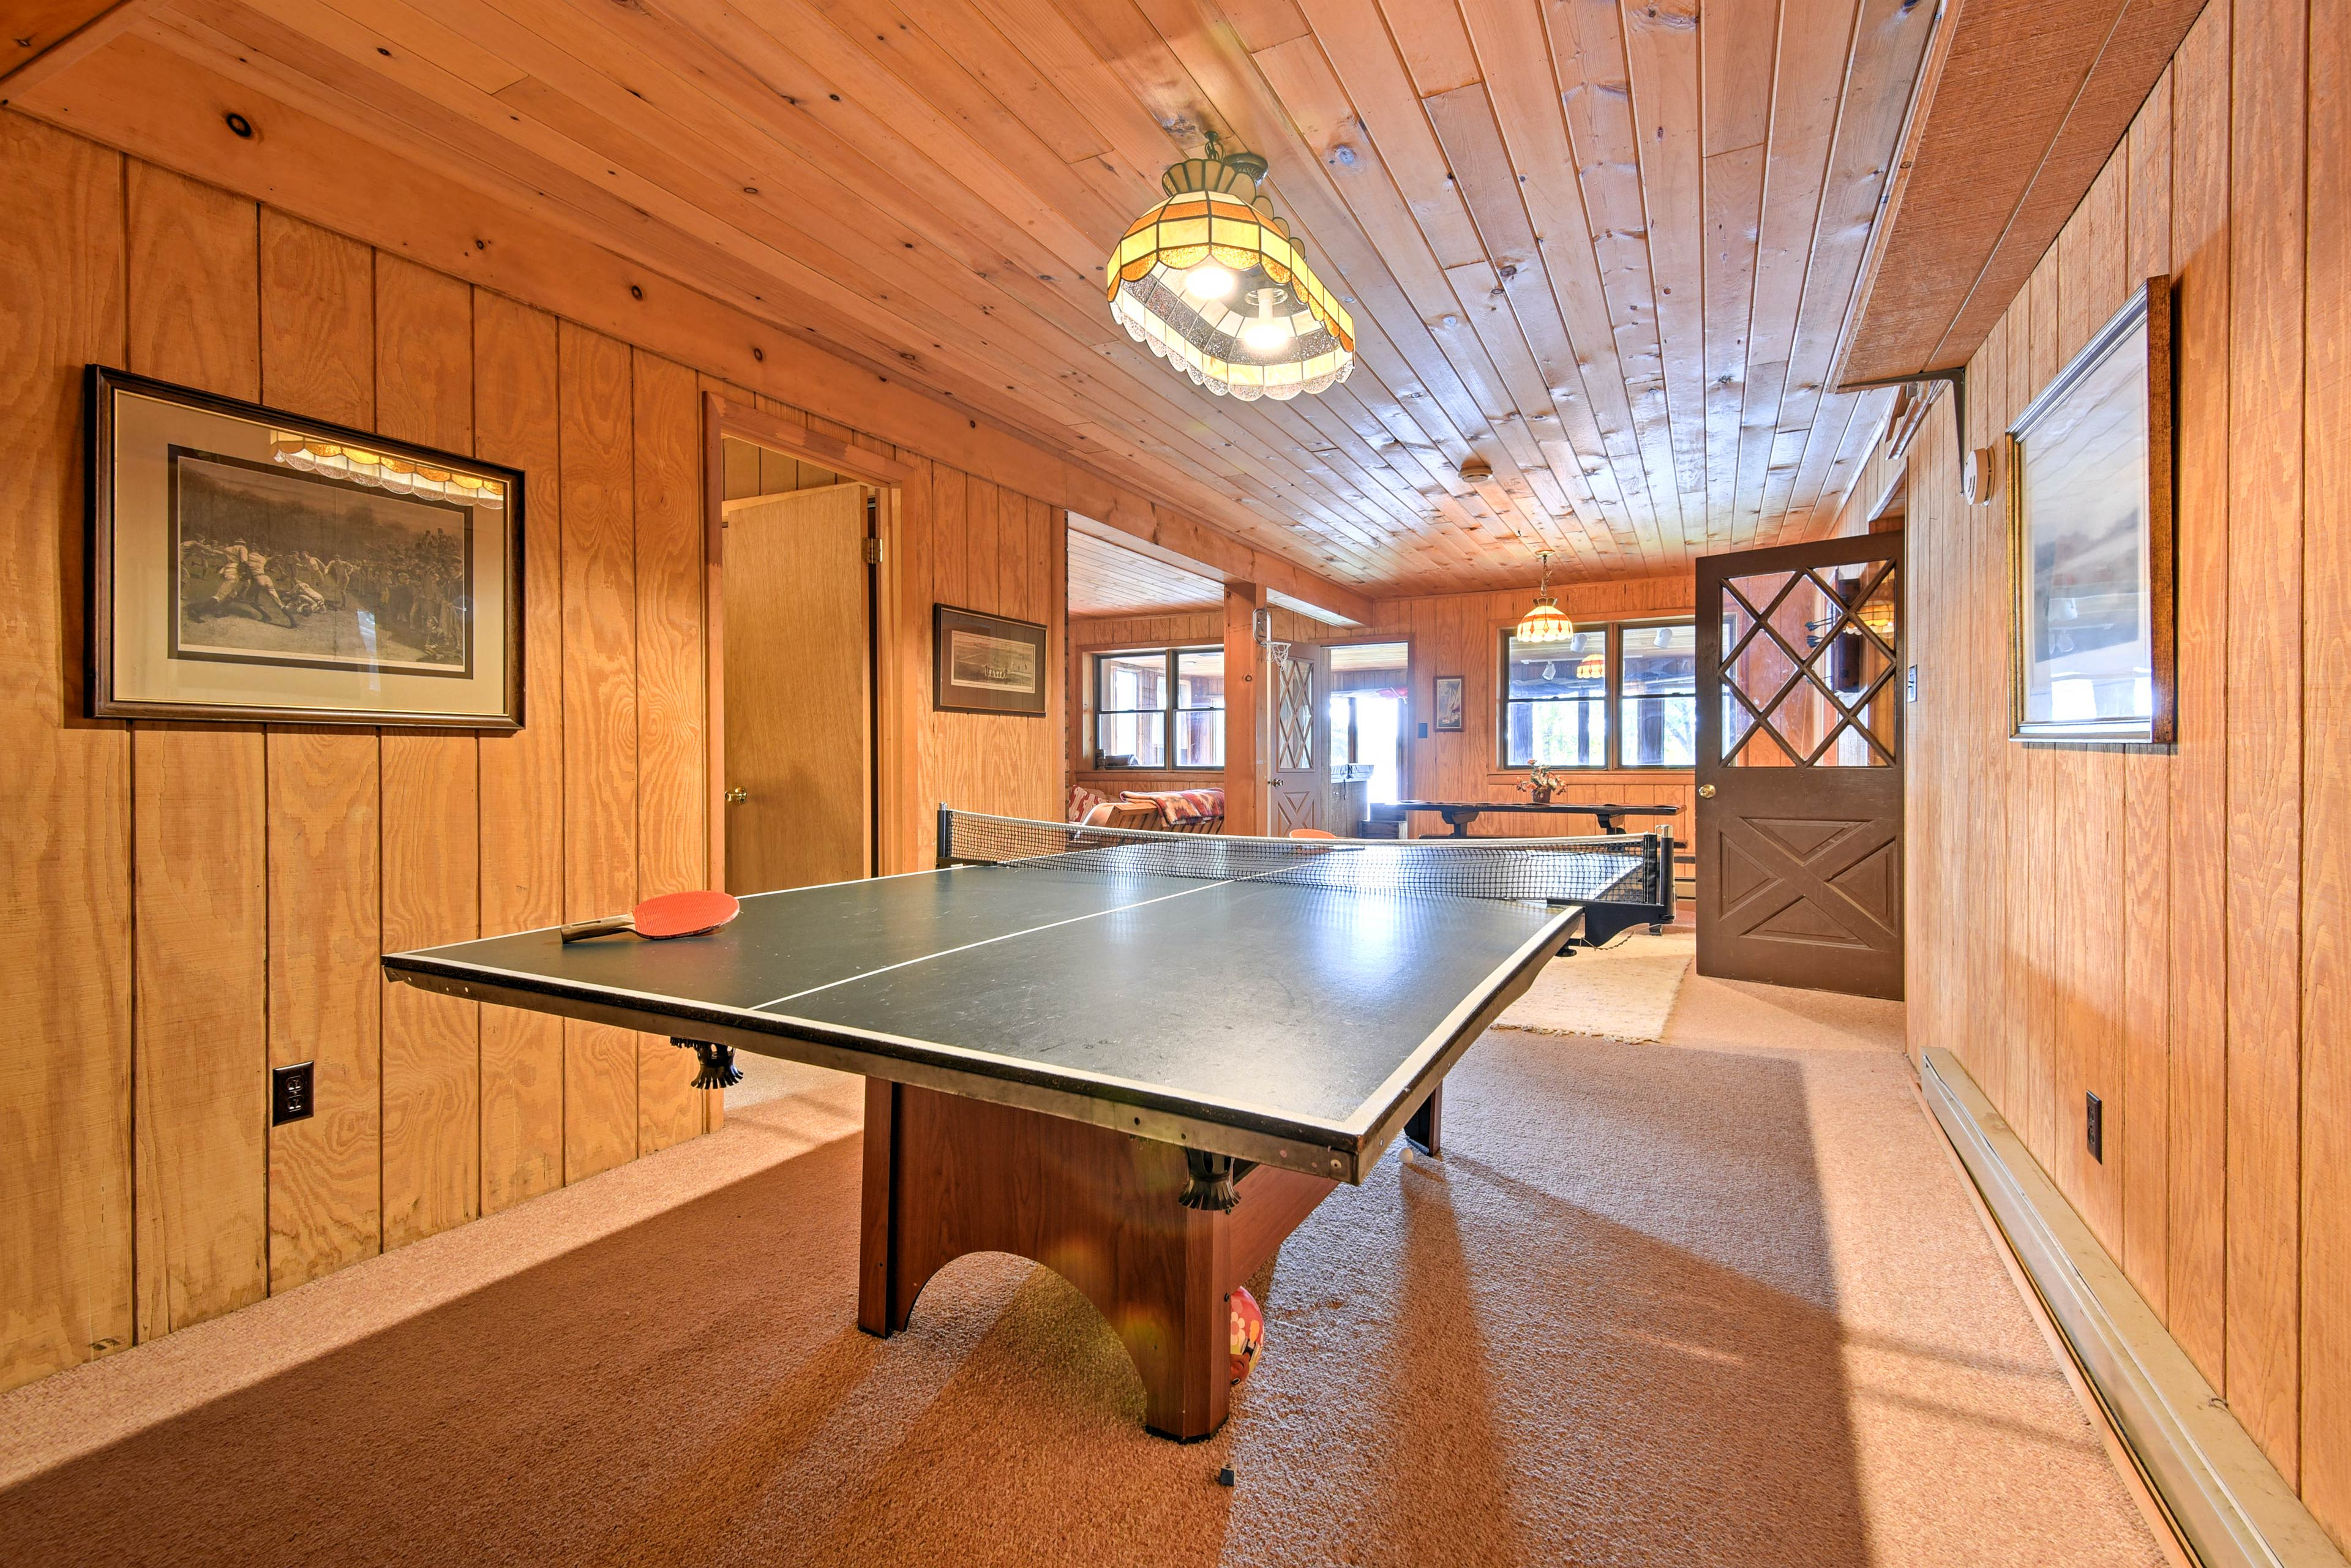 Downstairs is the game room with a ping-pong table.